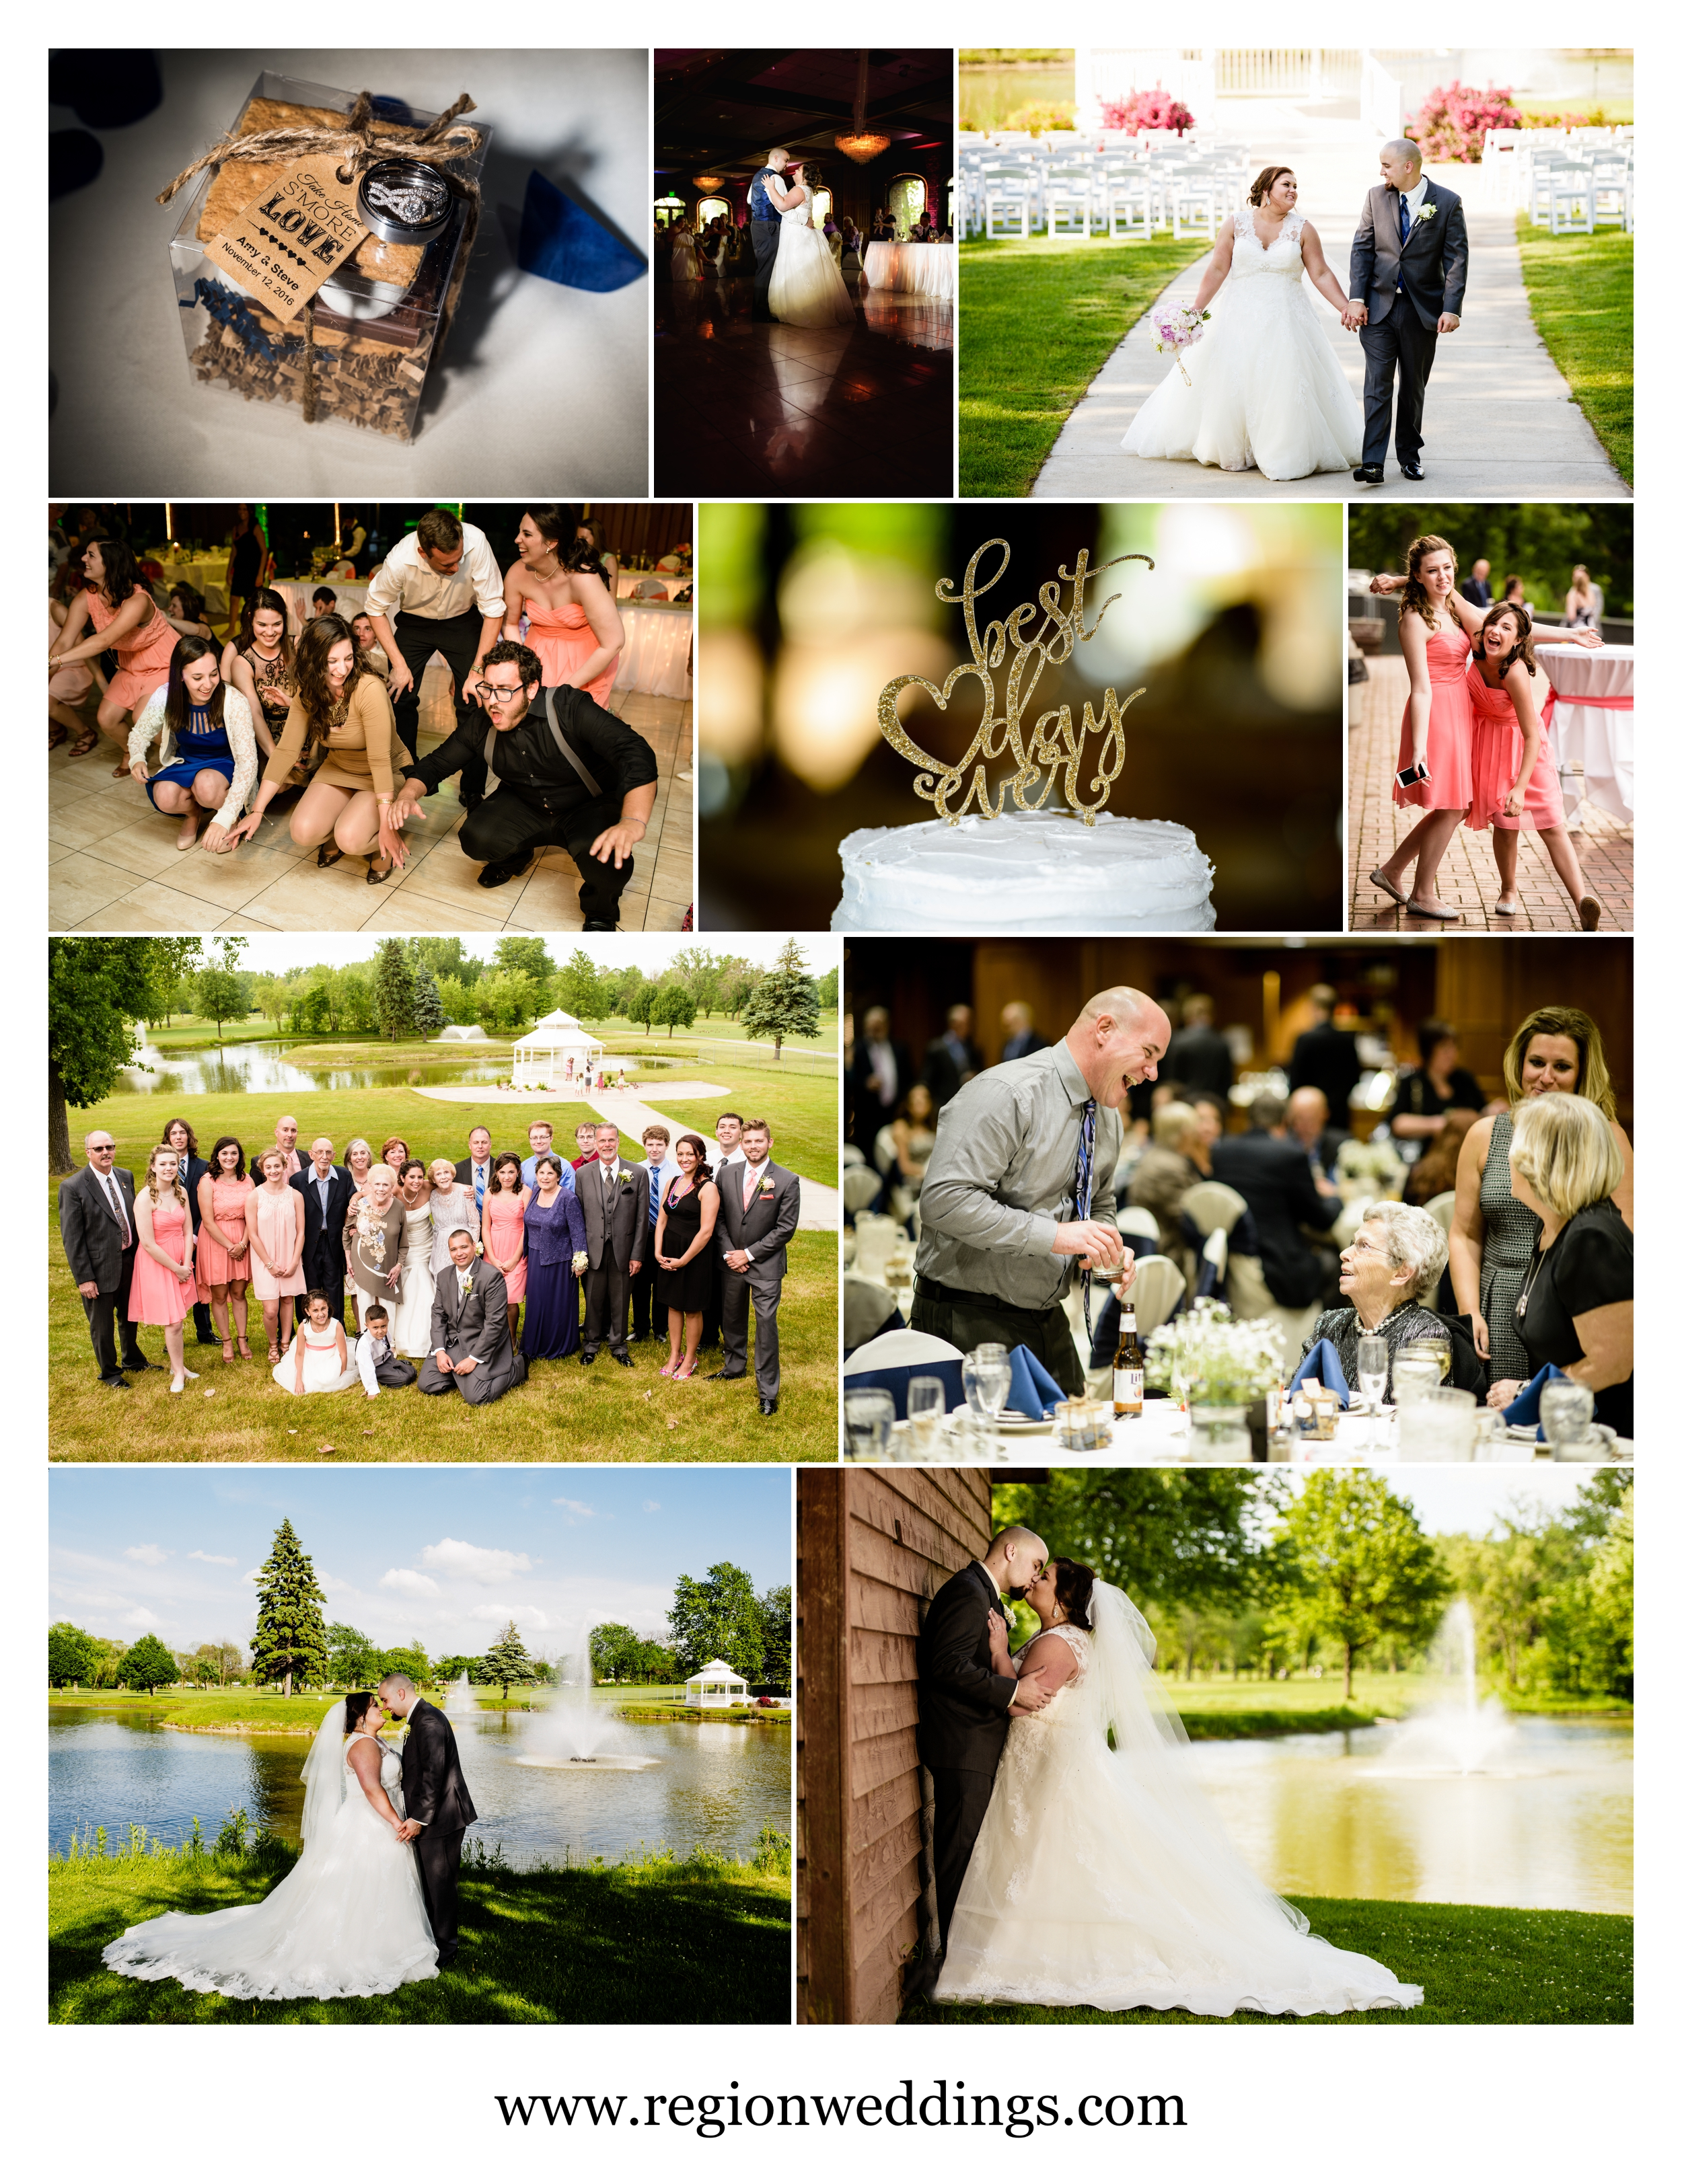 Wedding photos from Wicker Park Social Center in Munster, Indiana.